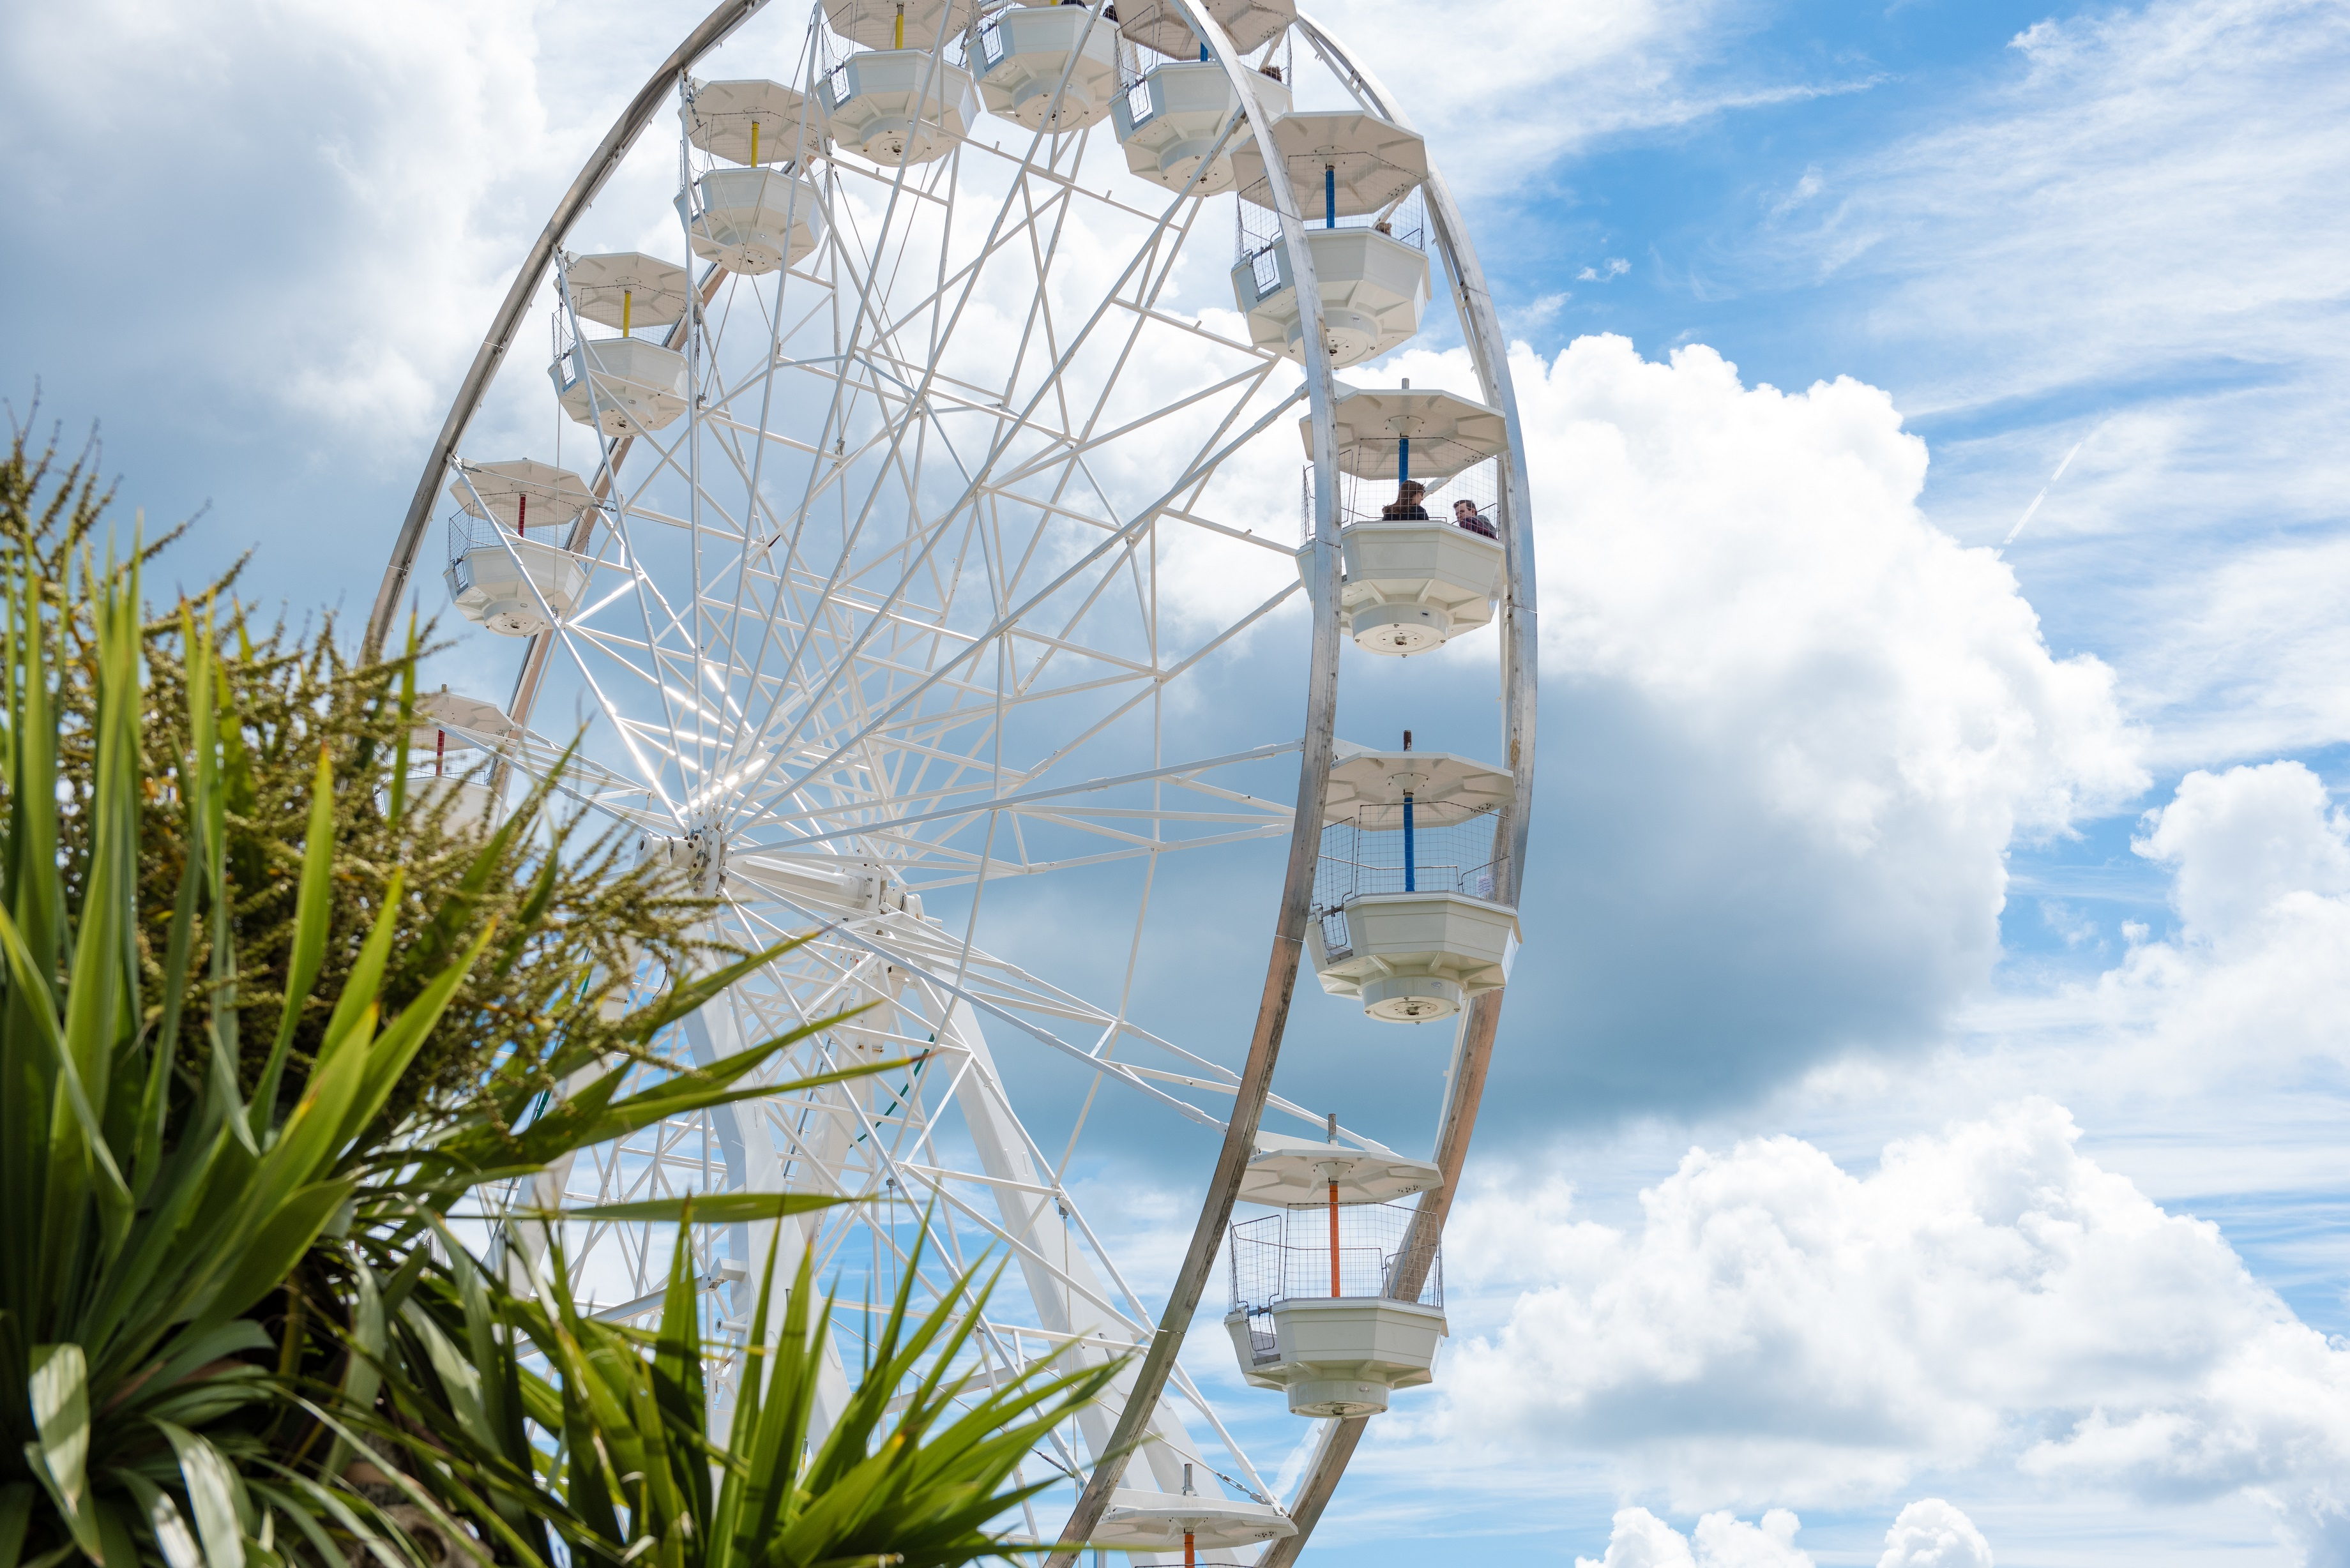 The Exmouth wheel, which was enjoyed by thousands of visitors last year.